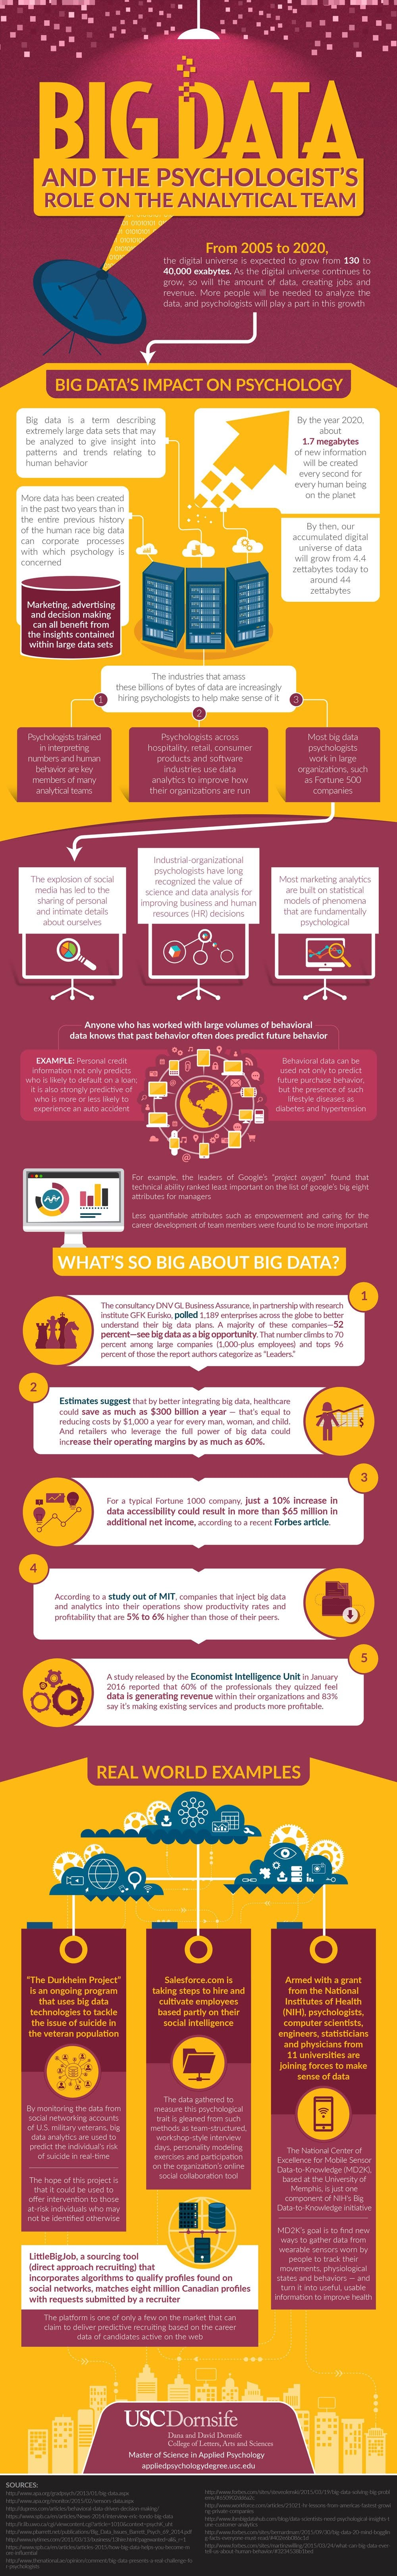 Big Data and the Psychologist's Role on the Analytical Team - #infographic